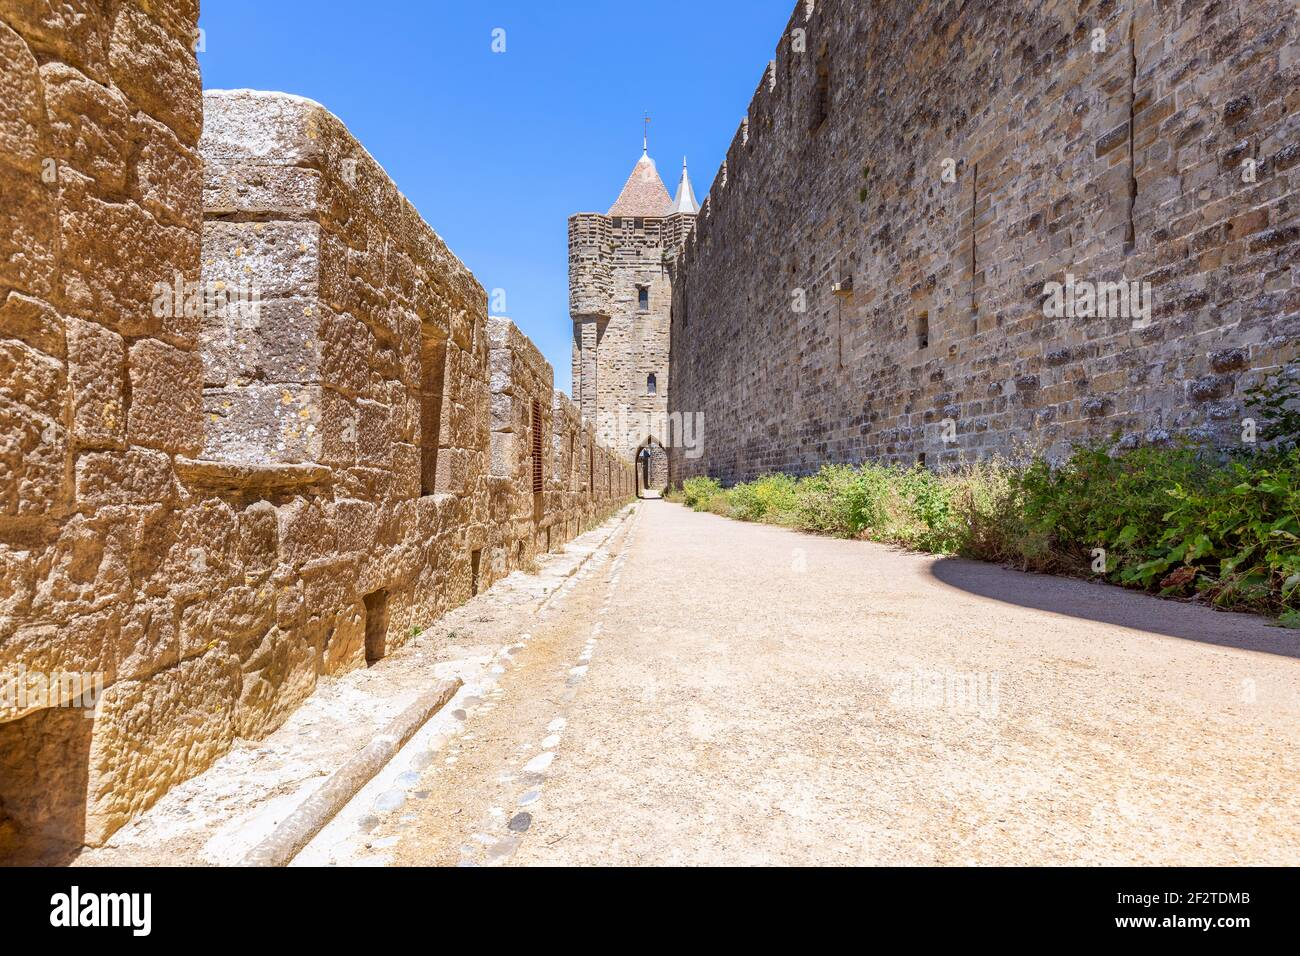 Wide fortified walls with walkways and arches of medieval castle of Carcassonne town Stock Photo